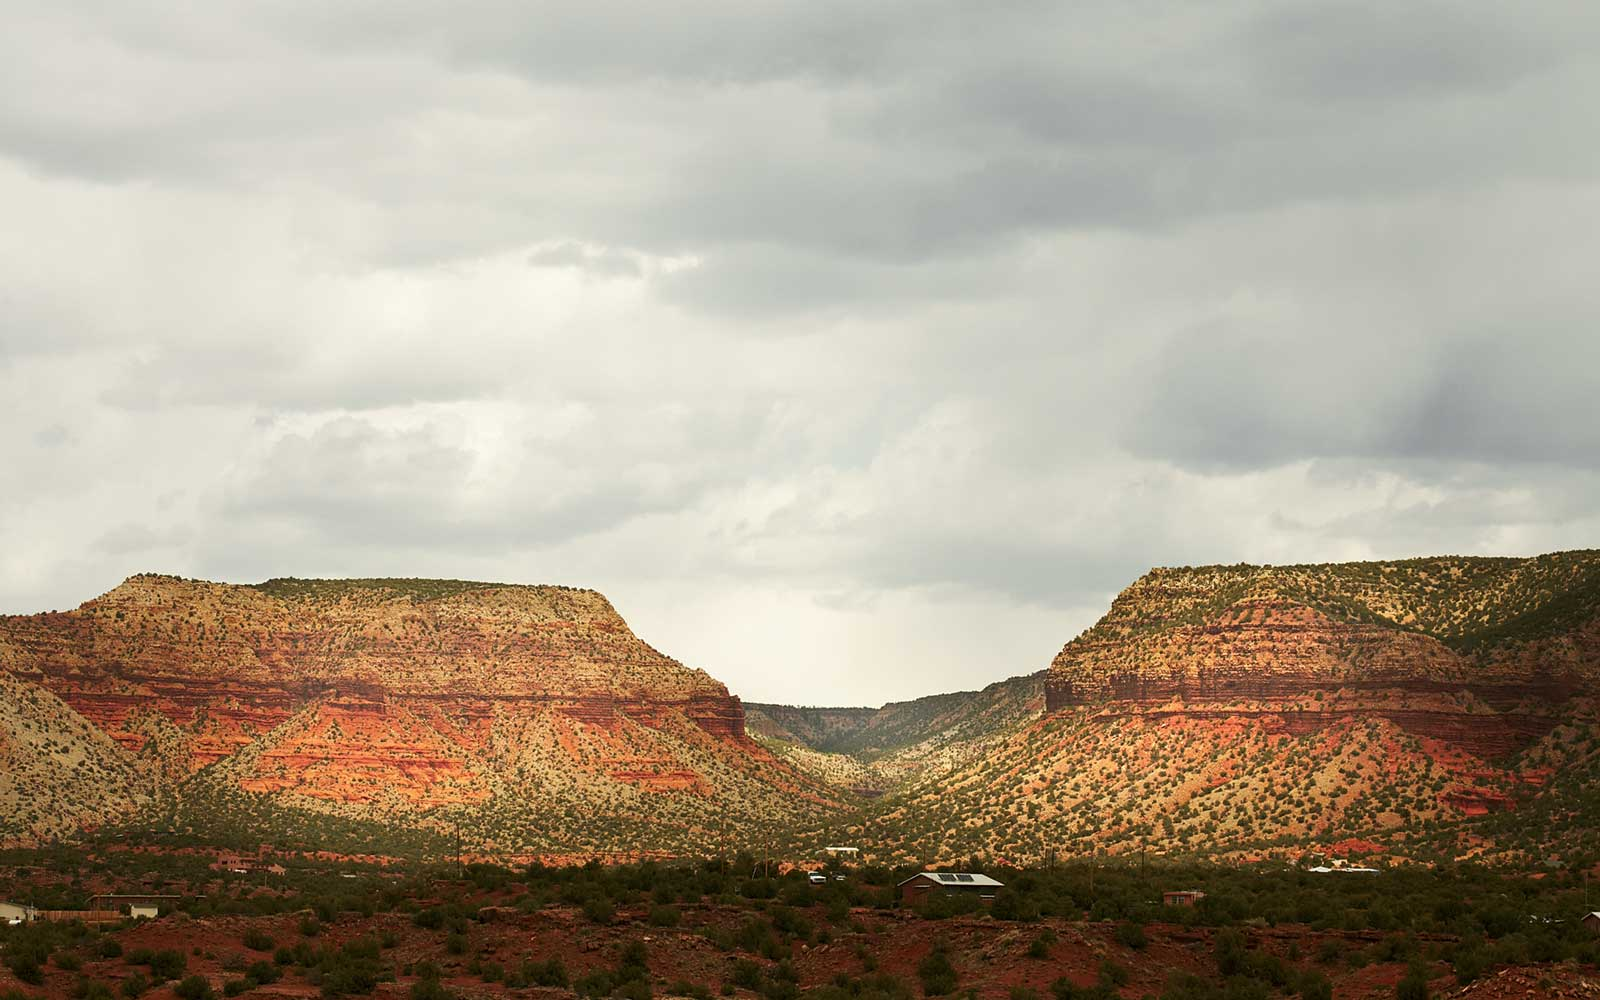 Take In the Southwest Scenery